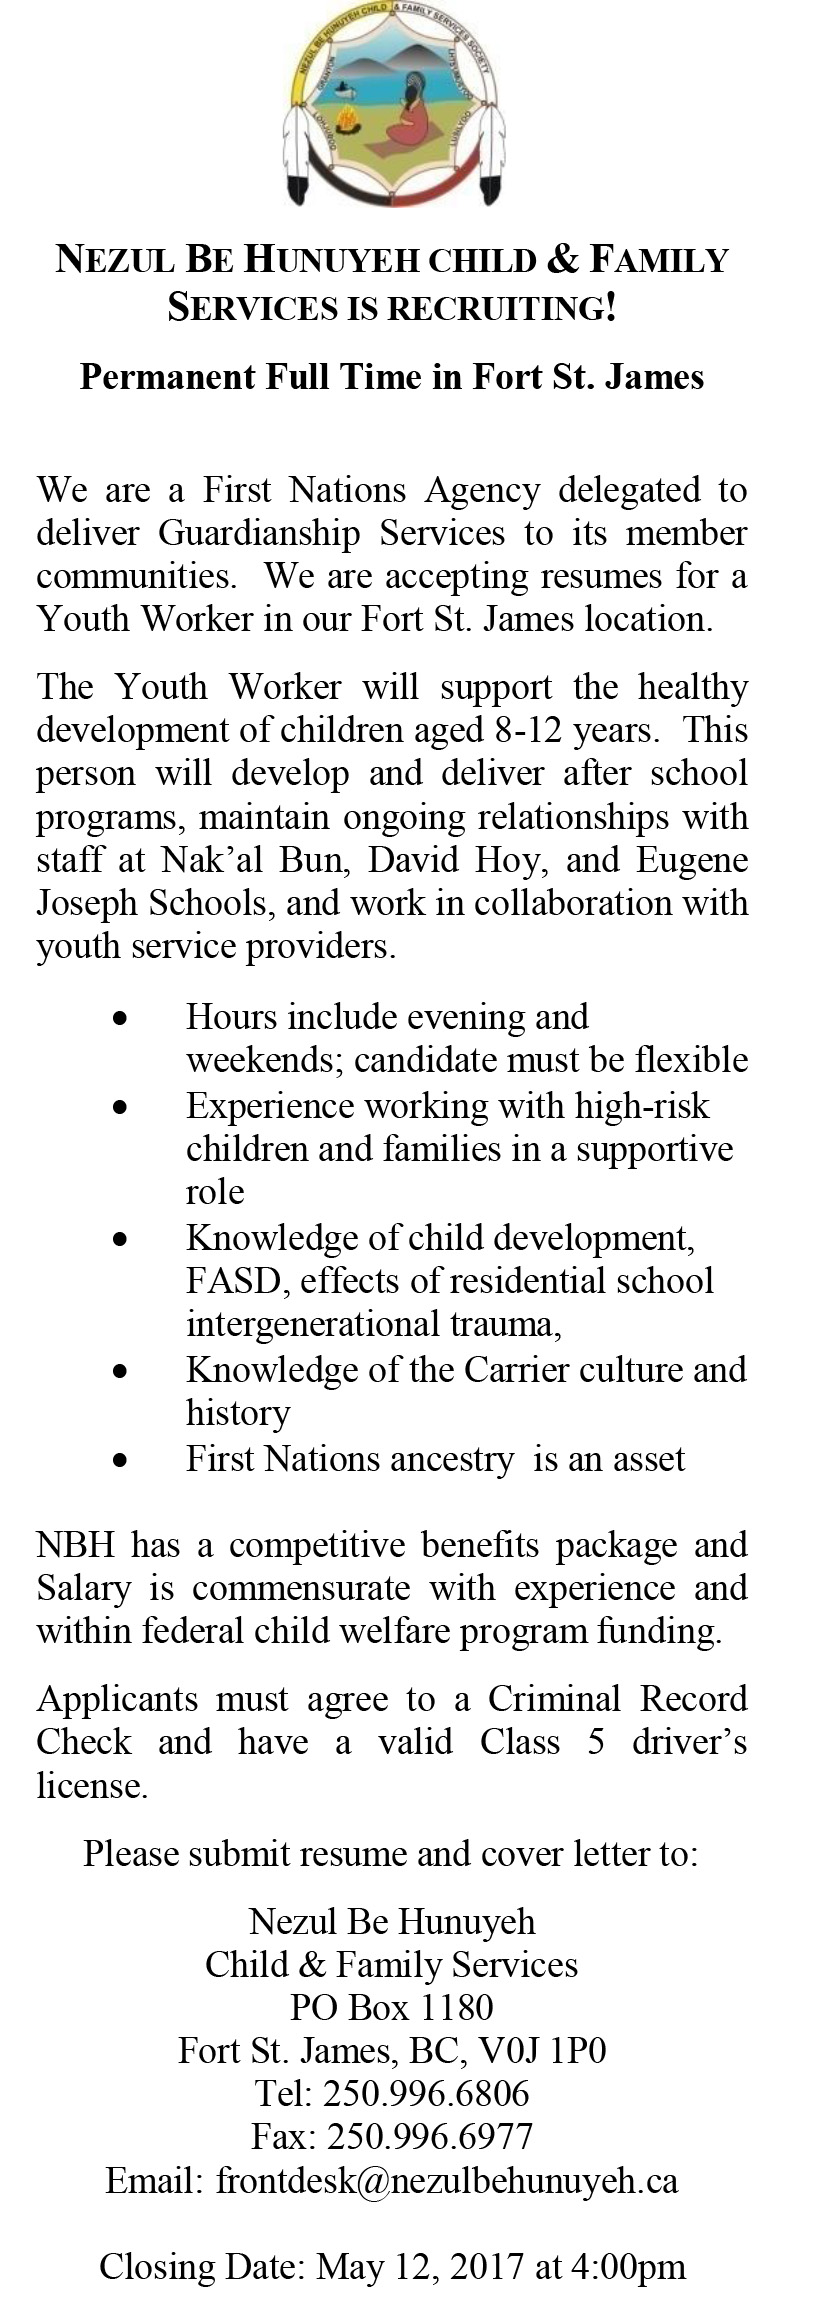 Cover Letter Samples For Teachers And Other Education Jobs Application Letter  Youth Worker Nezul Hunuyeh Recruiting Please See Other Opportunities Below